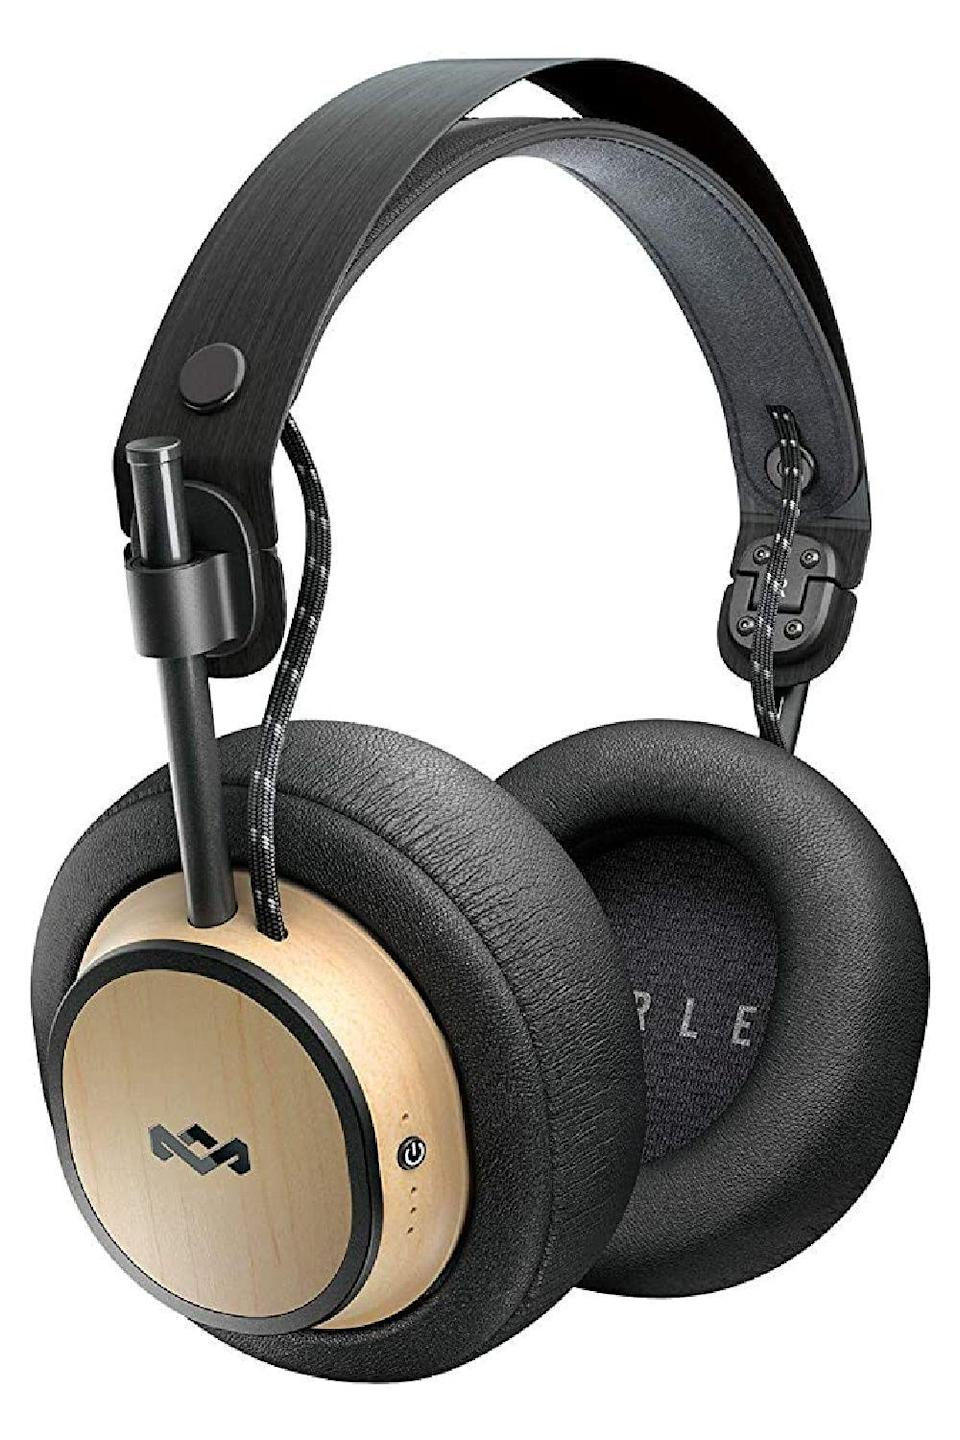 """<p><strong>House of Marley</strong></p><p>amazon.com</p><p><strong>$195.95</strong></p><p><a href=""""https://www.amazon.com/dp/B07MM2KQWQ?tag=syn-yahoo-20&ascsubtag=%5Bartid%7C10049.g.5199%5Bsrc%7Cyahoo-us"""" rel=""""nofollow noopener"""" target=""""_blank"""" data-ylk=""""slk:Shop Now"""" class=""""link rapid-noclick-resp"""">Shop Now</a></p><p>If his other headphones are worn out or don't have great sound quality, indulge him with a pair of Bluetooth over-the-ear ones made with comfortable memory foam. The best part? They charge quickly and have a 30-hour battery life.</p>"""